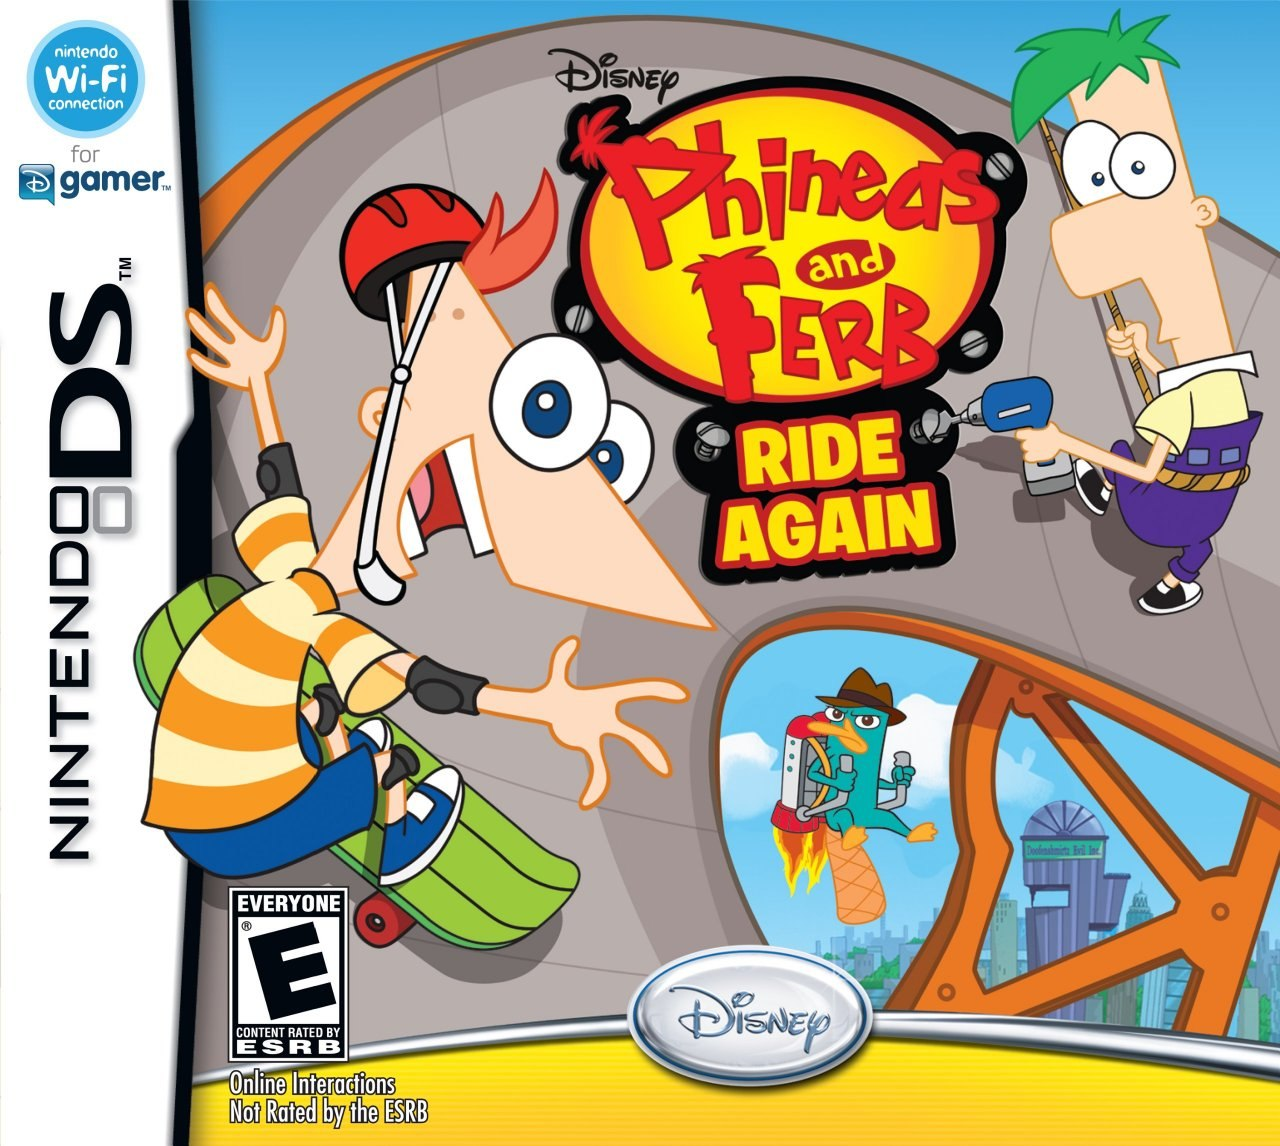 vignette.wikia.nocookie.net/phineasandferb/images/7/70/Phineas_and_Ferb_Ride_Again.jpg